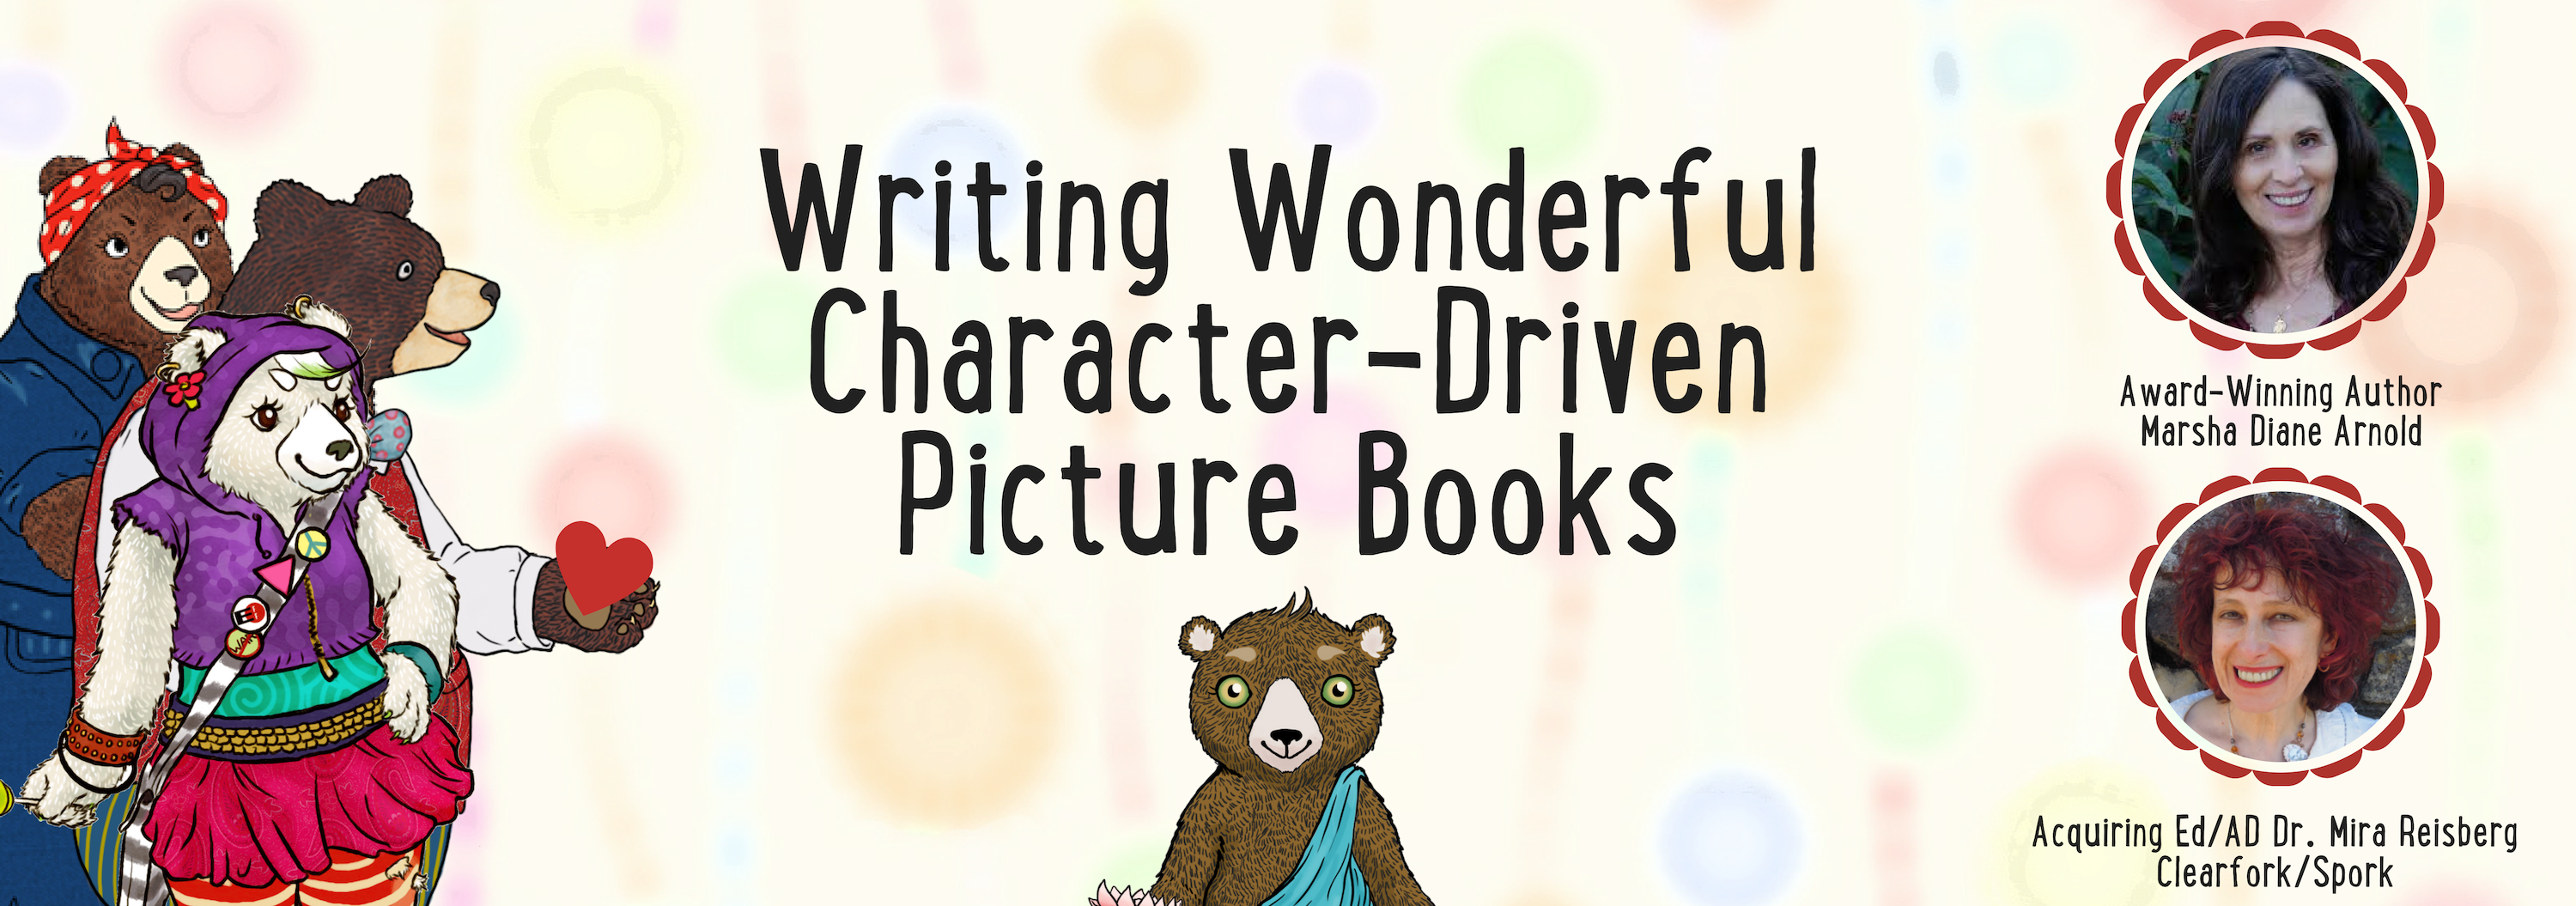 Writing Wonderful Character-Driven Picture Books at the Children's Book Academy